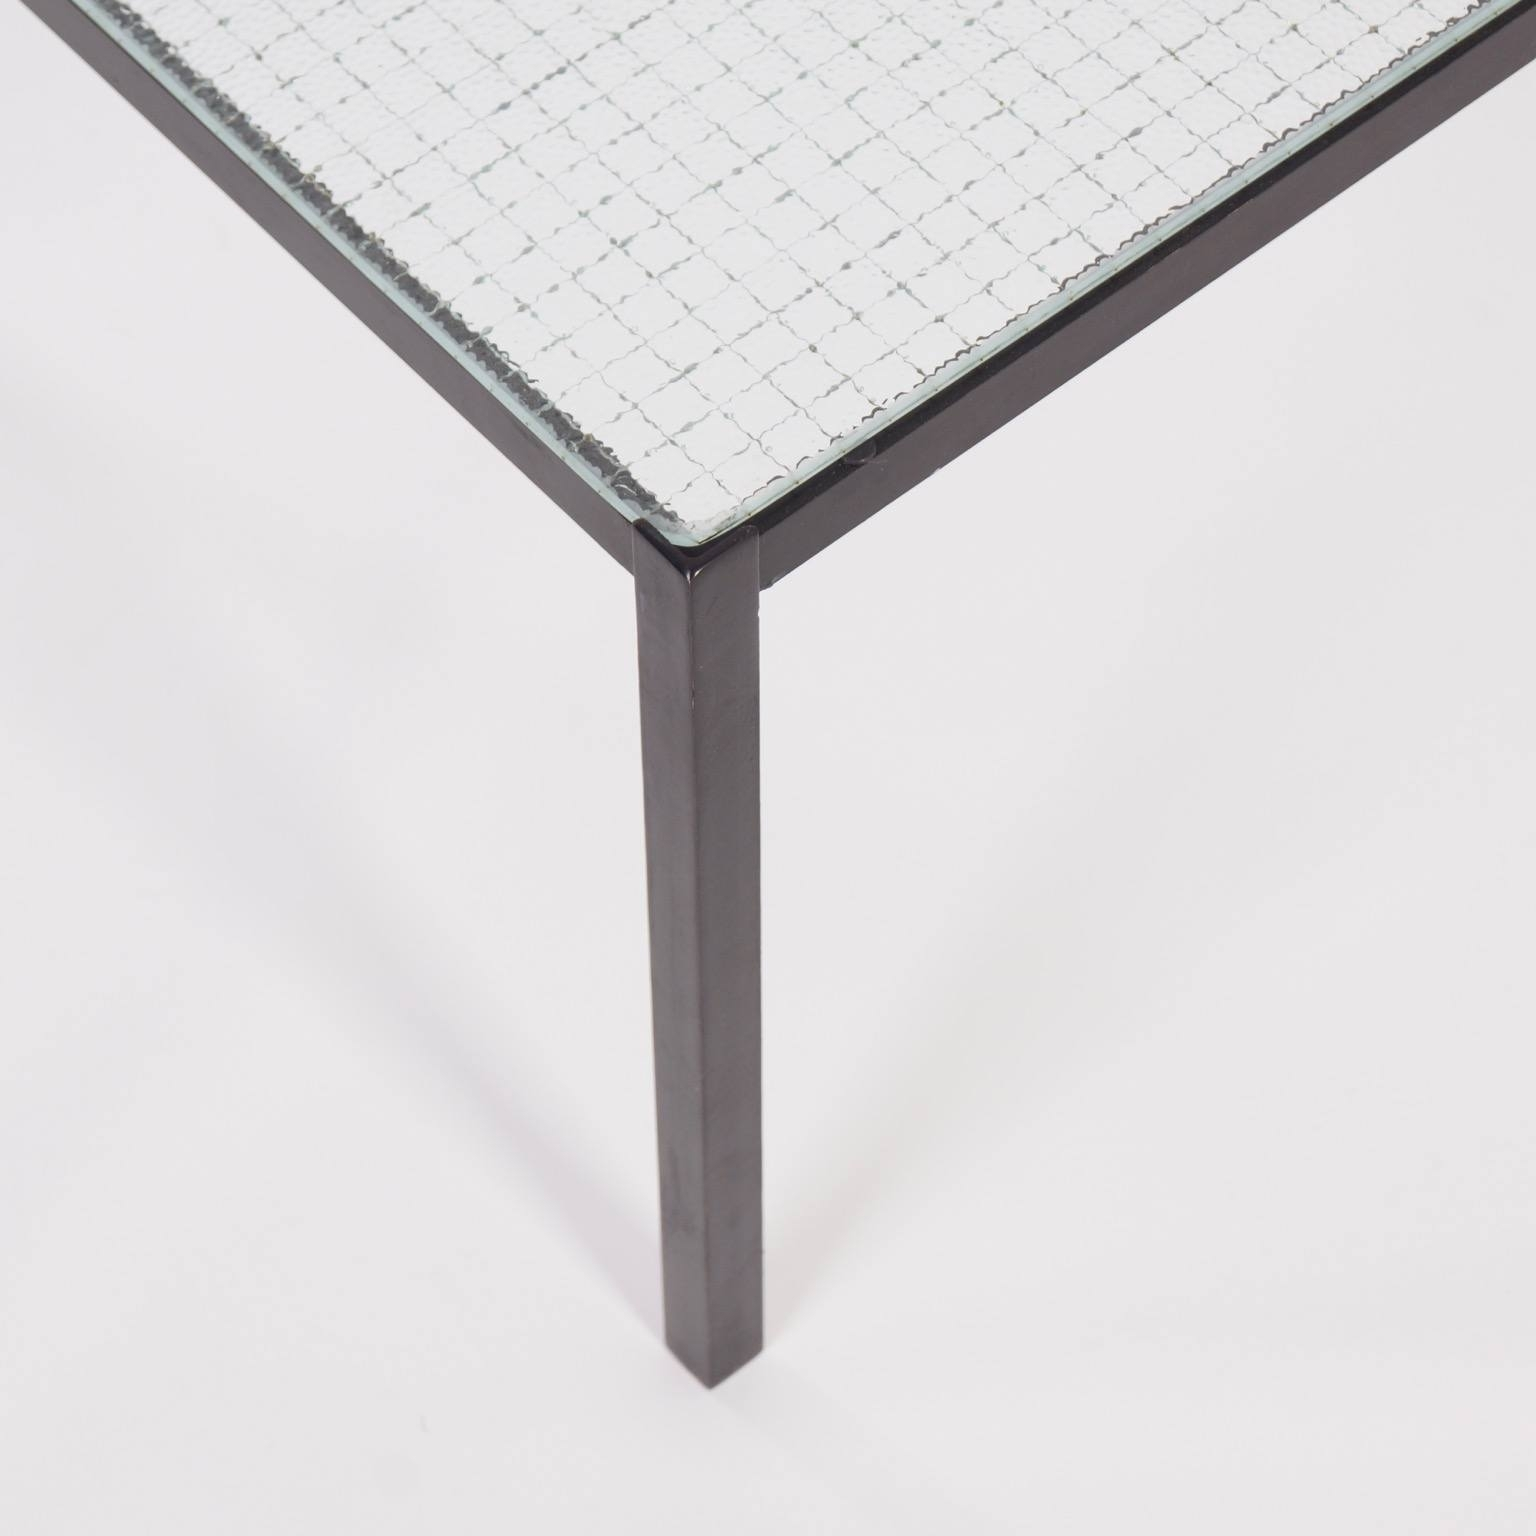 Square Coffee Table With Wire Glass, 1960S - Ztijl | Vintage Design with regard to Black Wire Coffee Tables (Image 19 of 30)